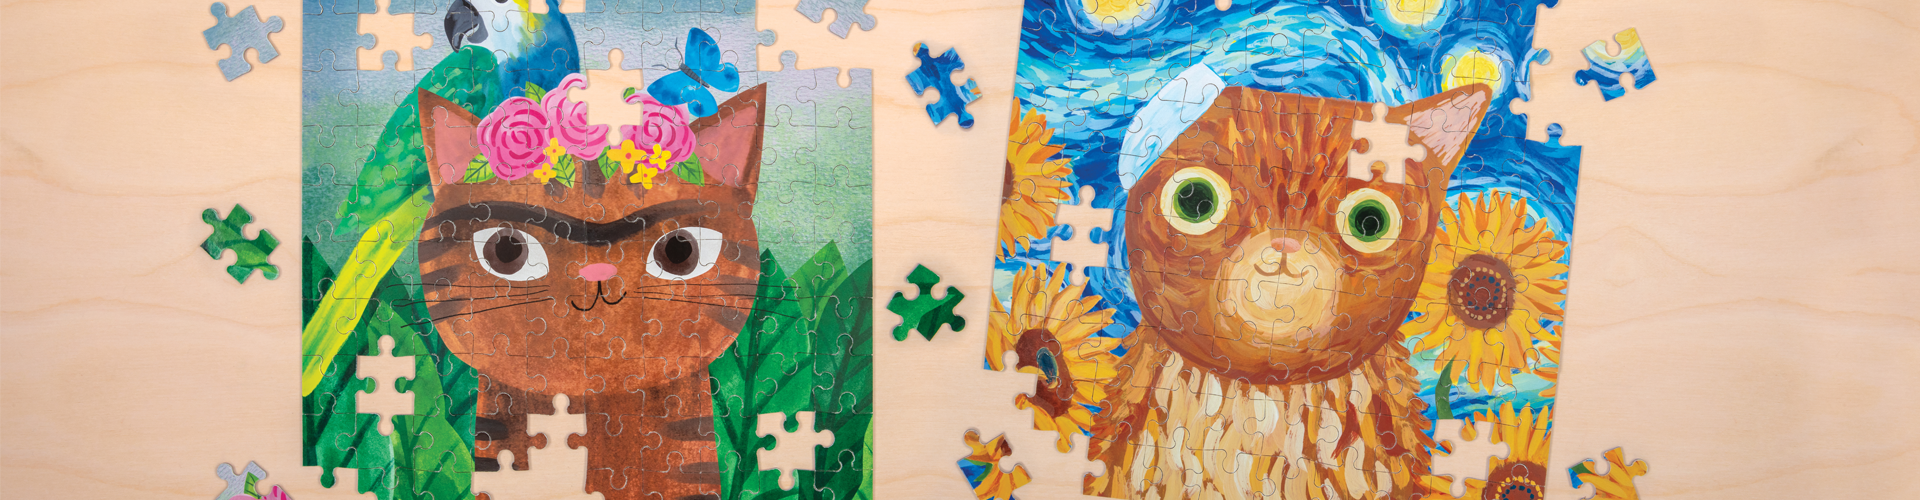 Tin-Jigsaw-puzzles-for-kids-from-mudpuppy